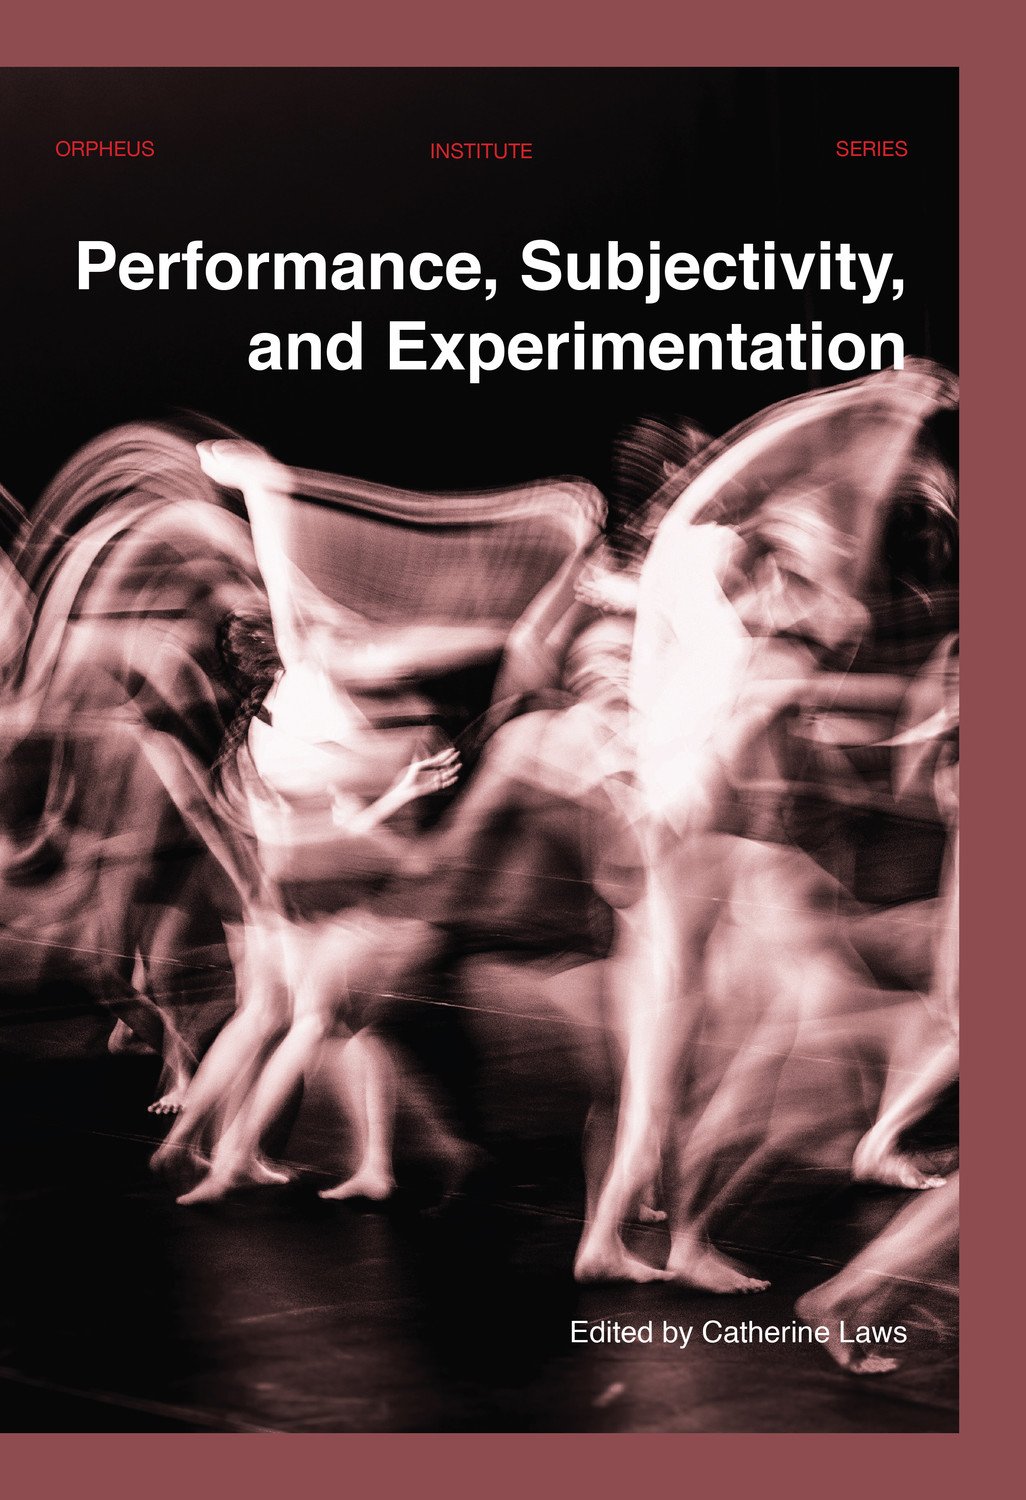 Performance, Subjectivity, and Experimentation